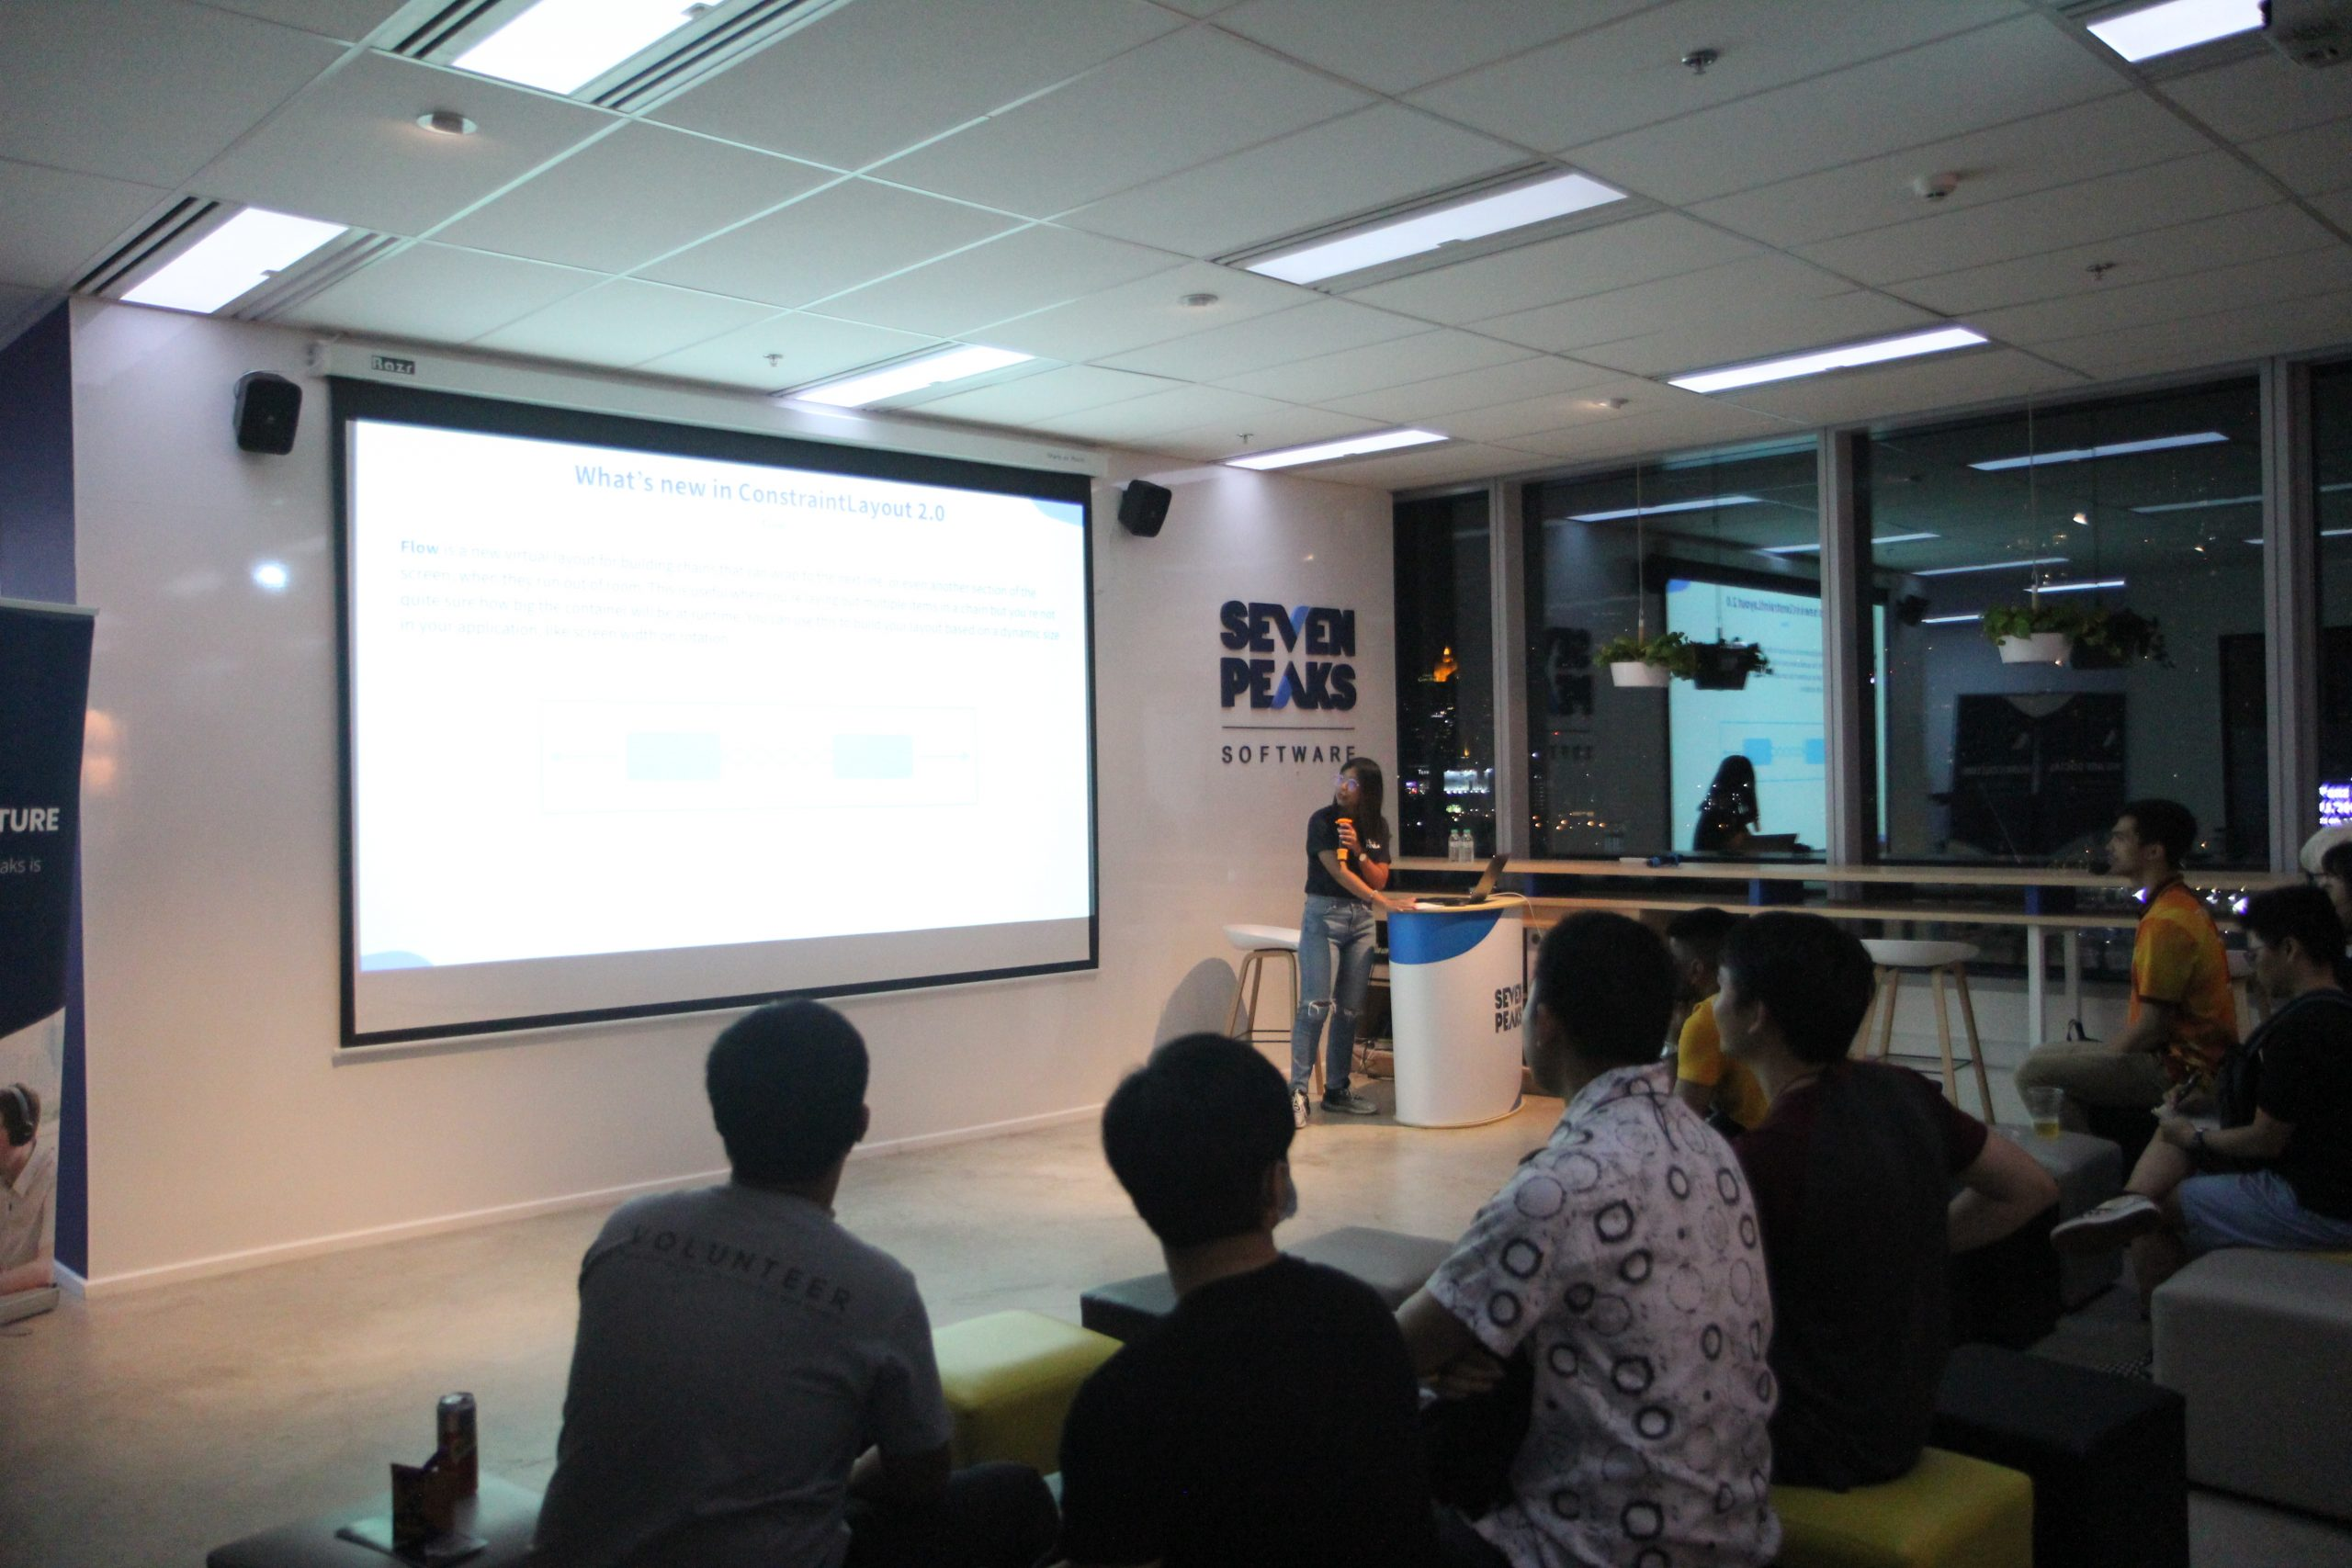 Android meetup - Presentation about ConstraintLayout2.0 by Ann